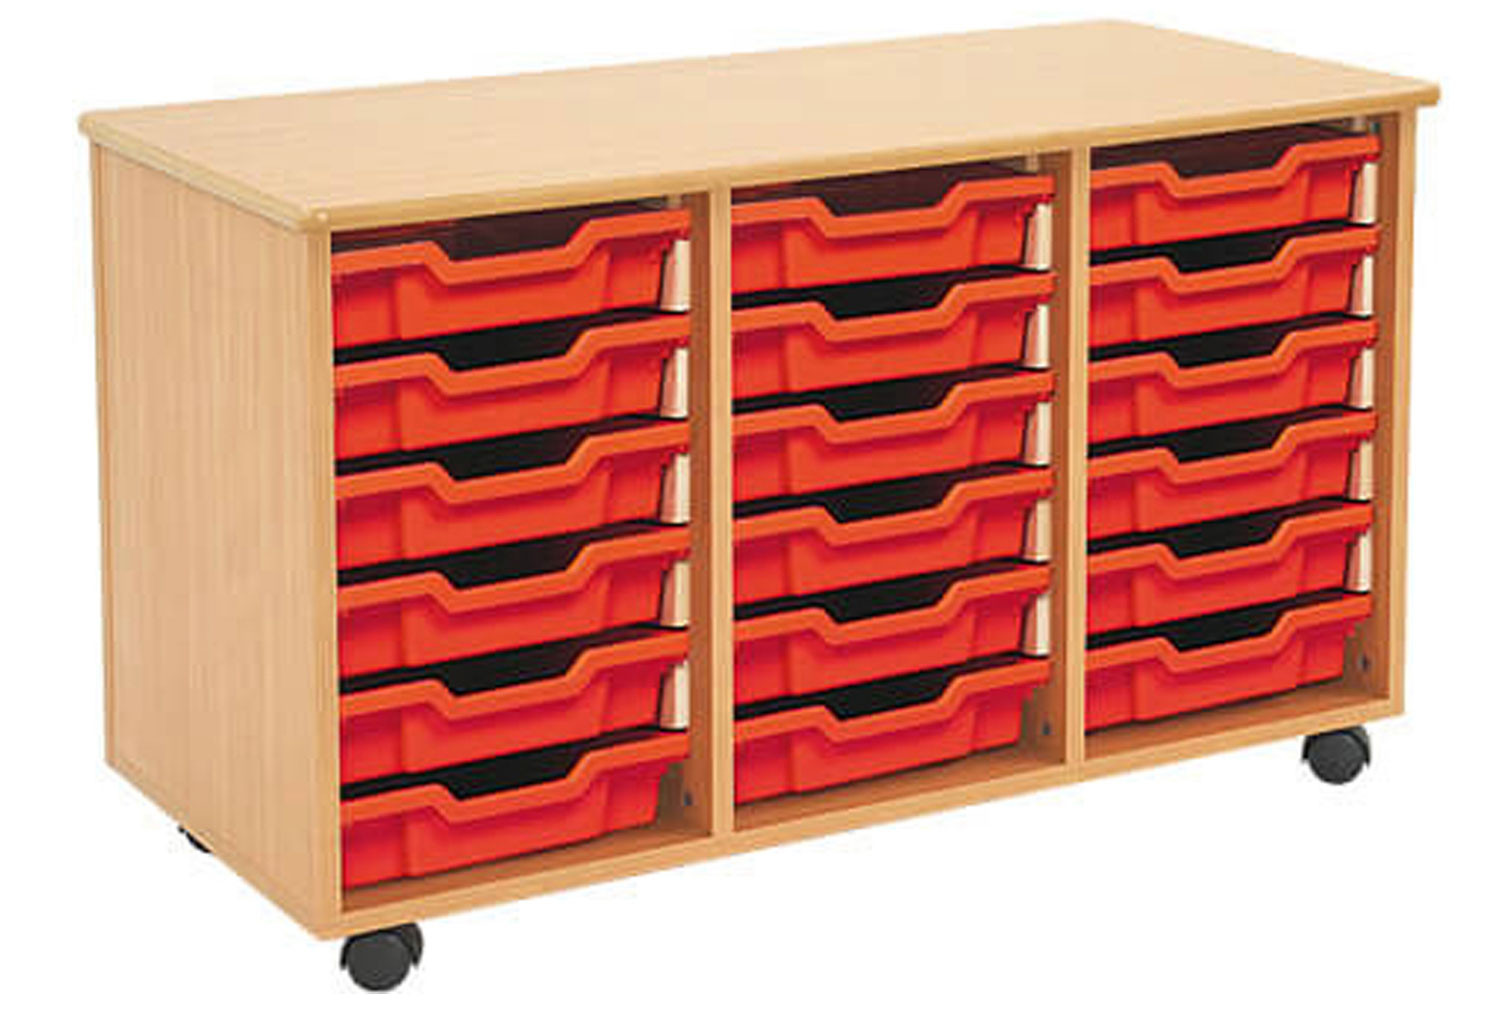 Mobile tray storage unit with 18 shallow Gratnells trays